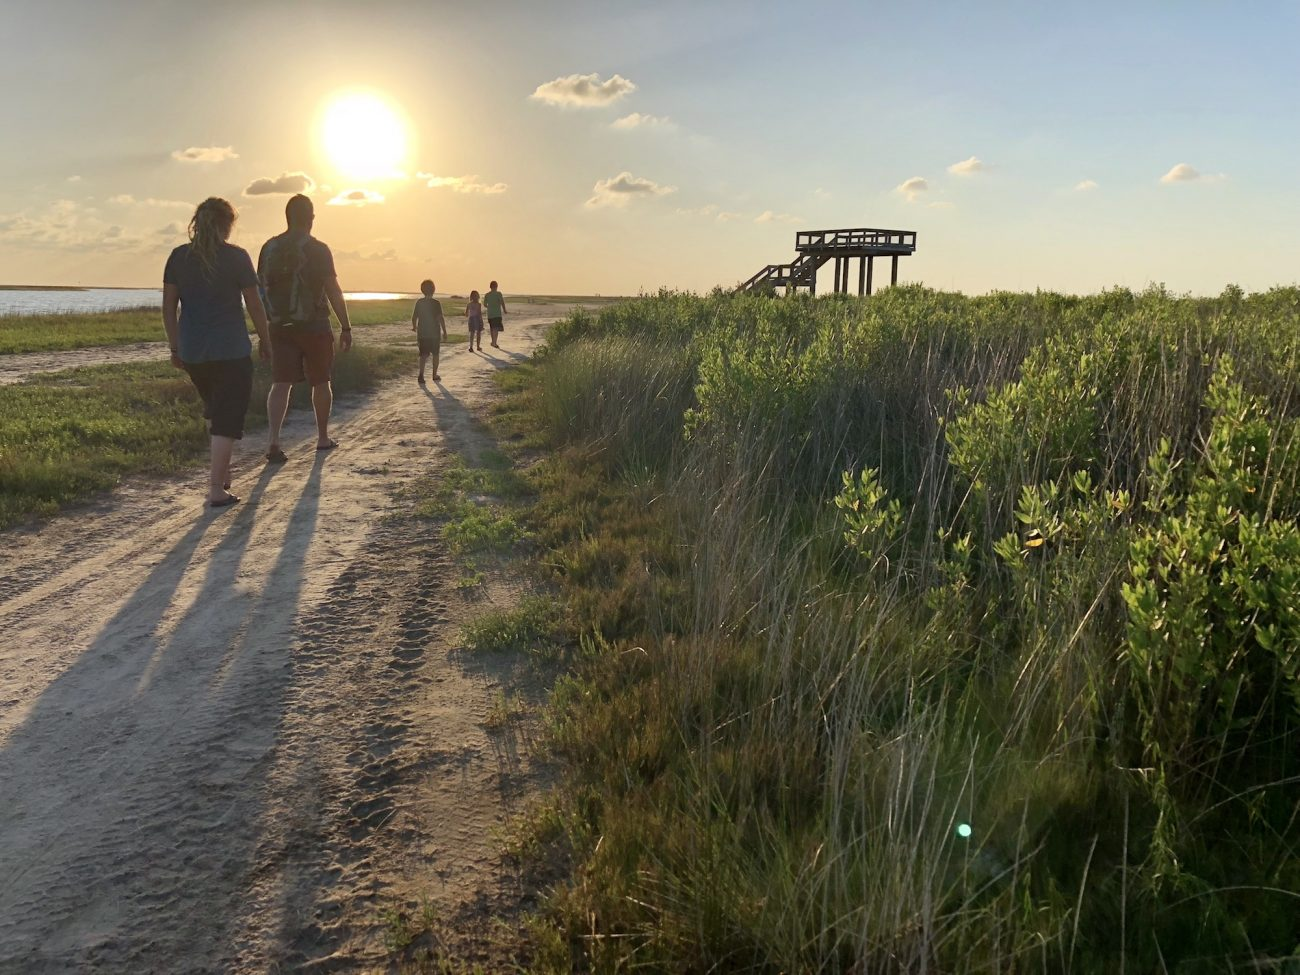 Family hikes to overlook at sunset